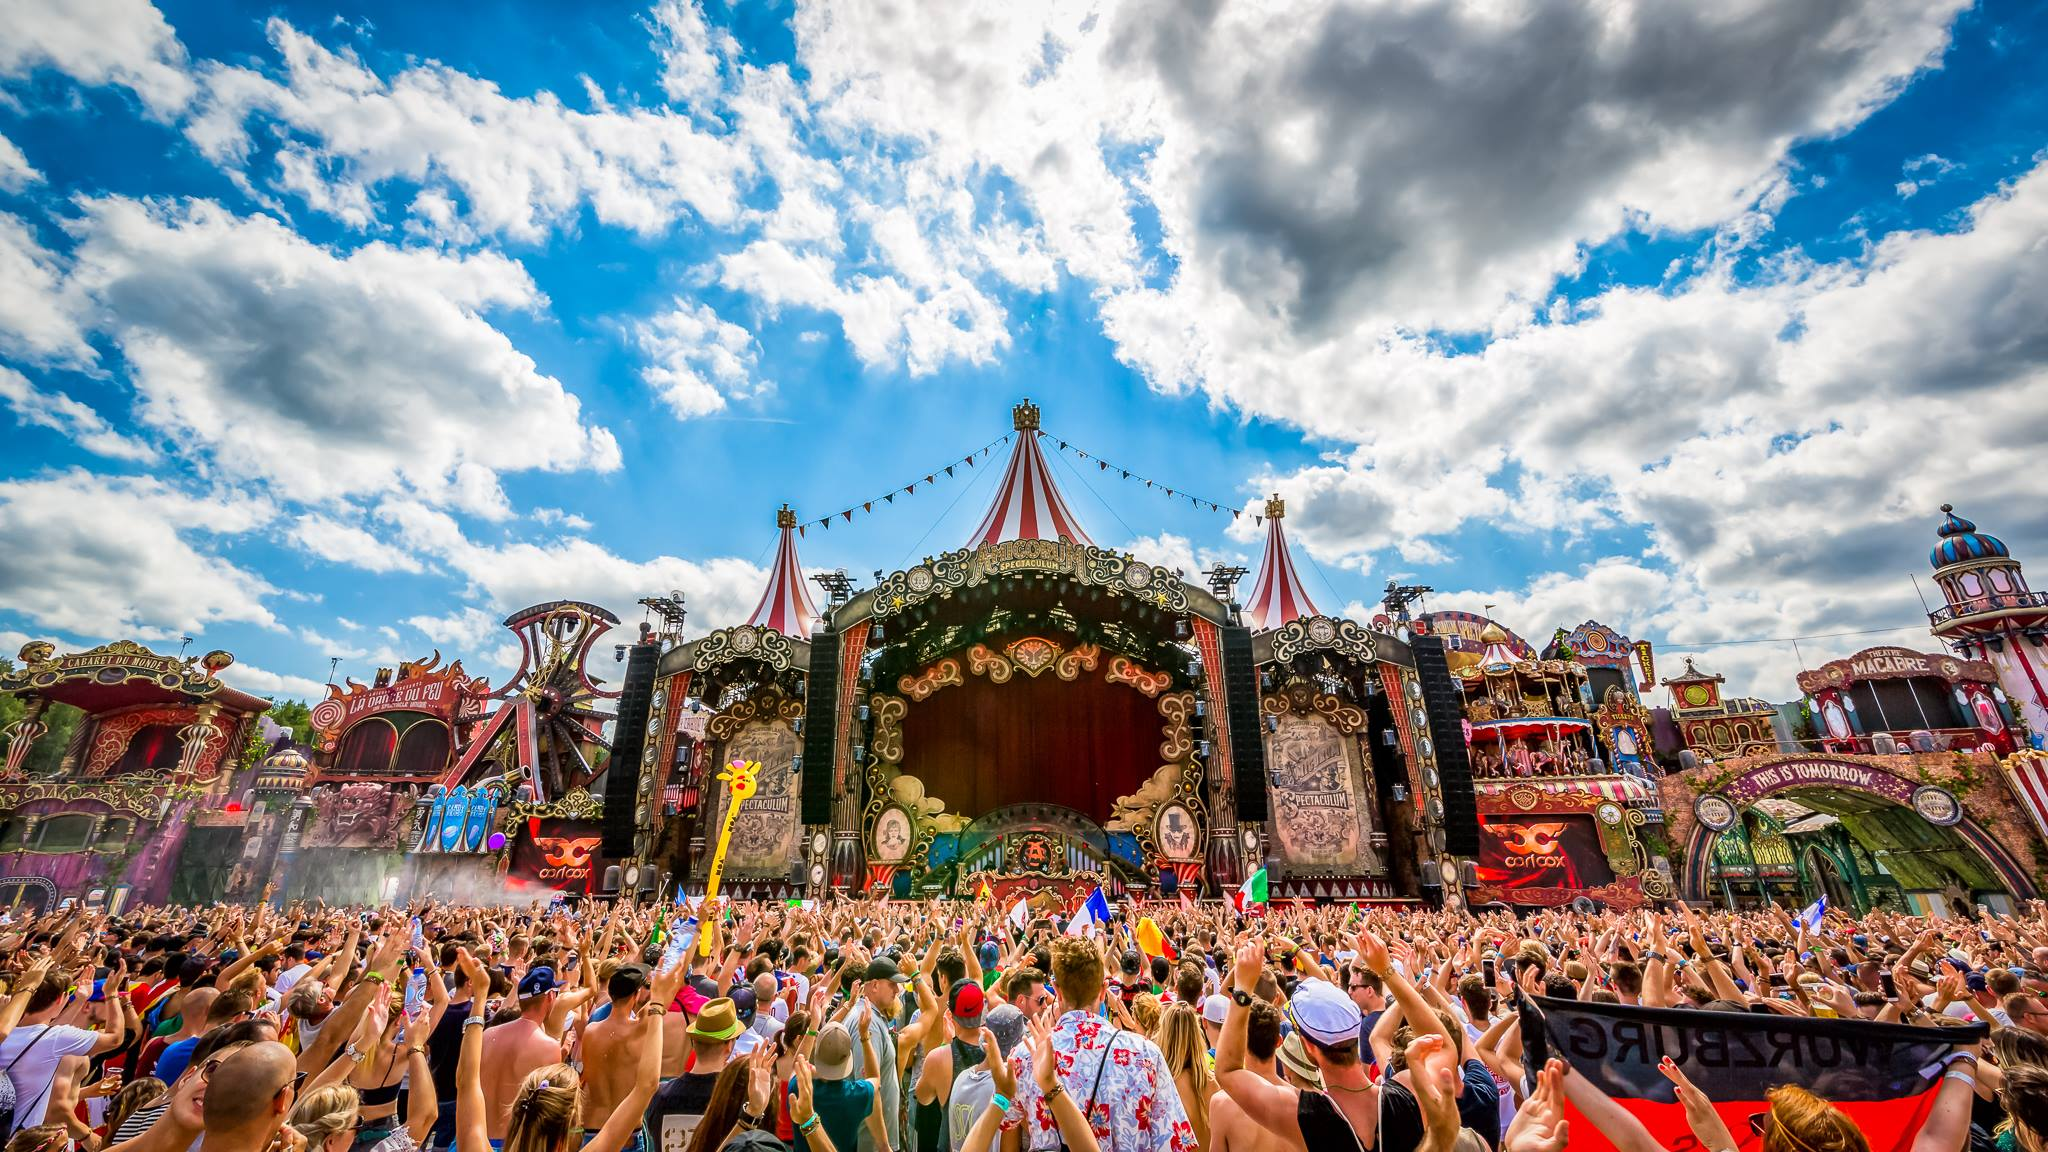 6 Reasons Why You Need To Visit Tomorrowland